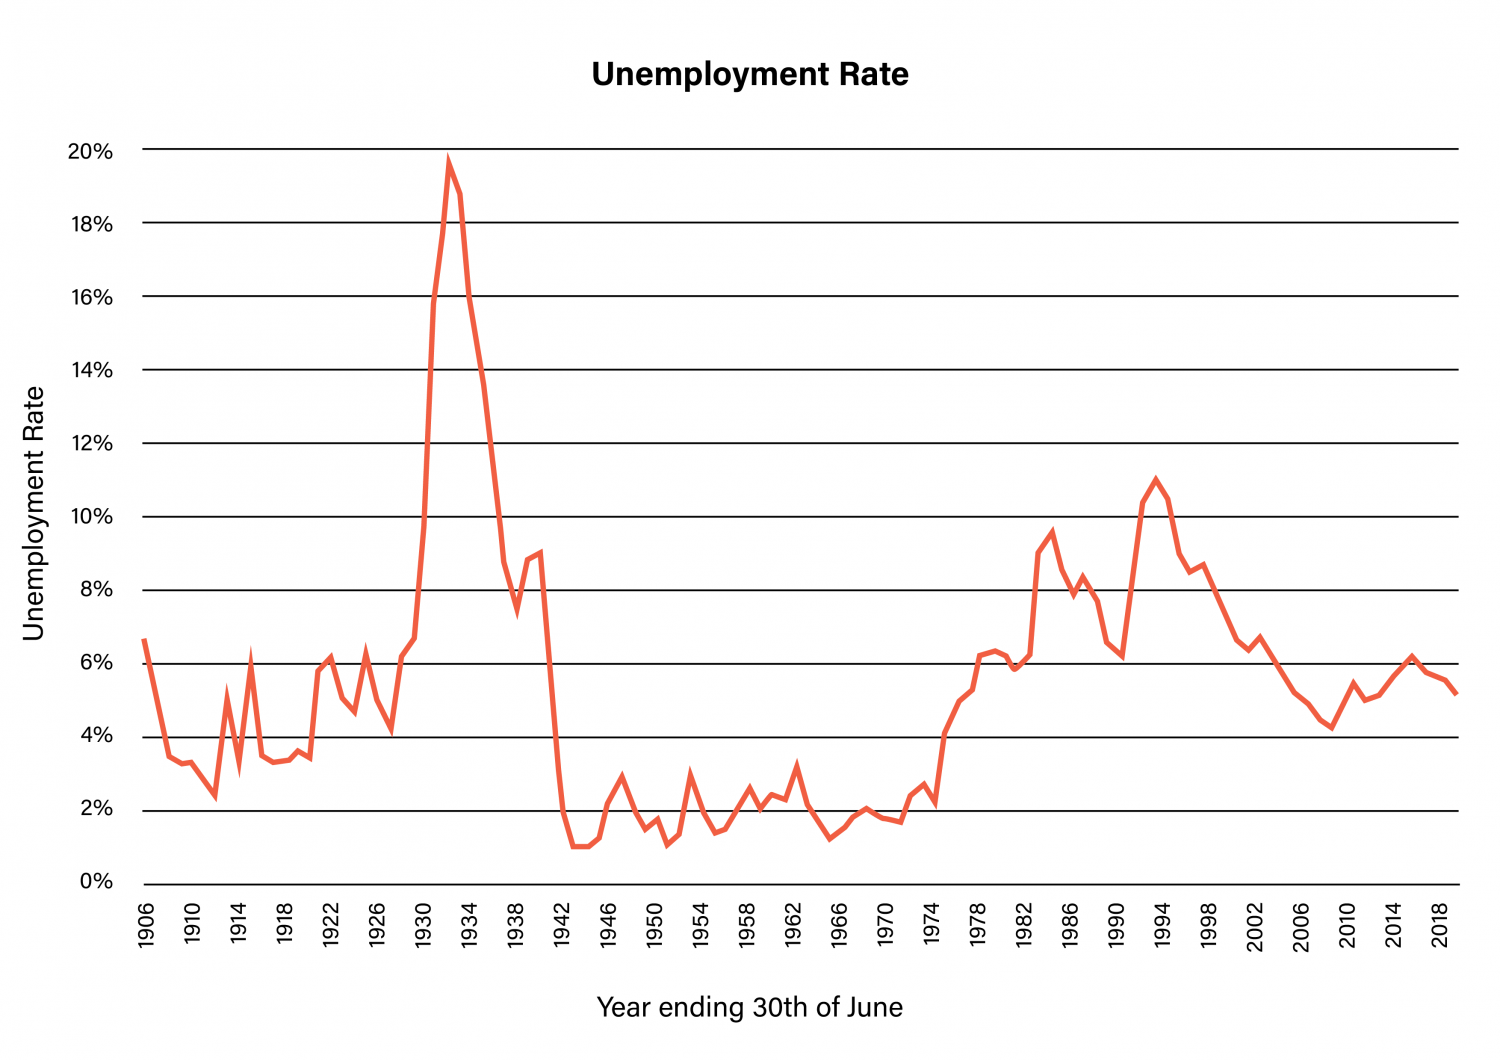 SGS Economics and Planning Unemployment Rate